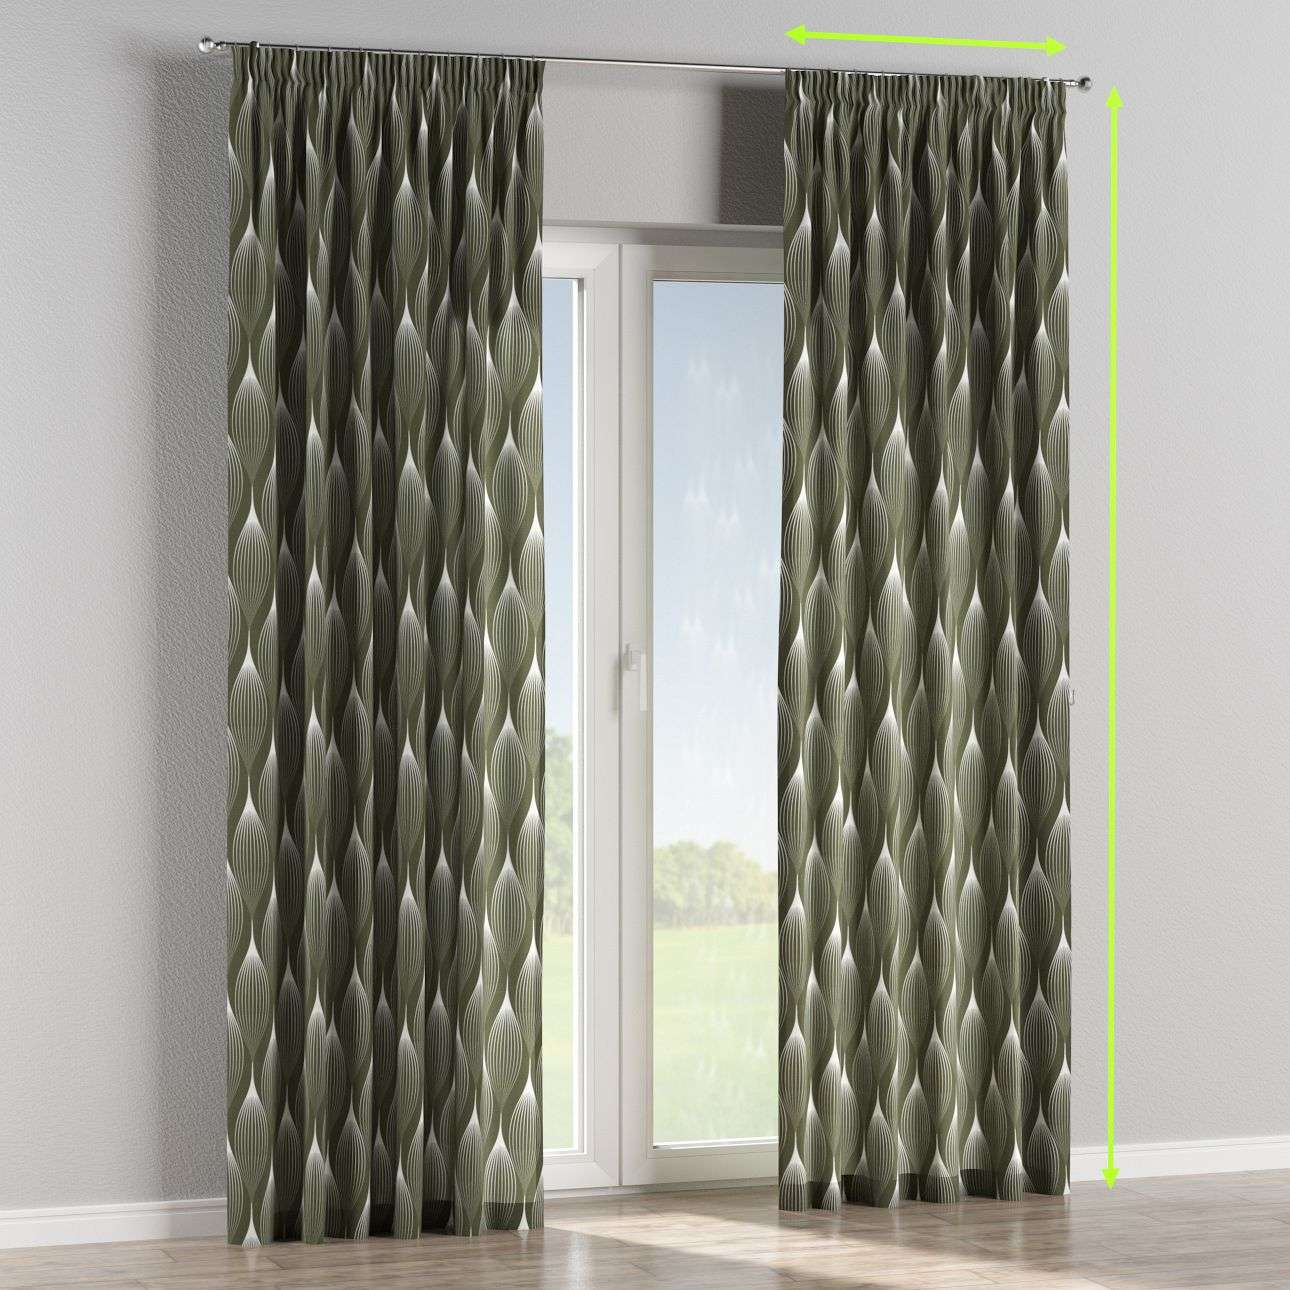 Pencil pleat lined curtains in collection Comic Book & Geo Prints, fabric: 135-20